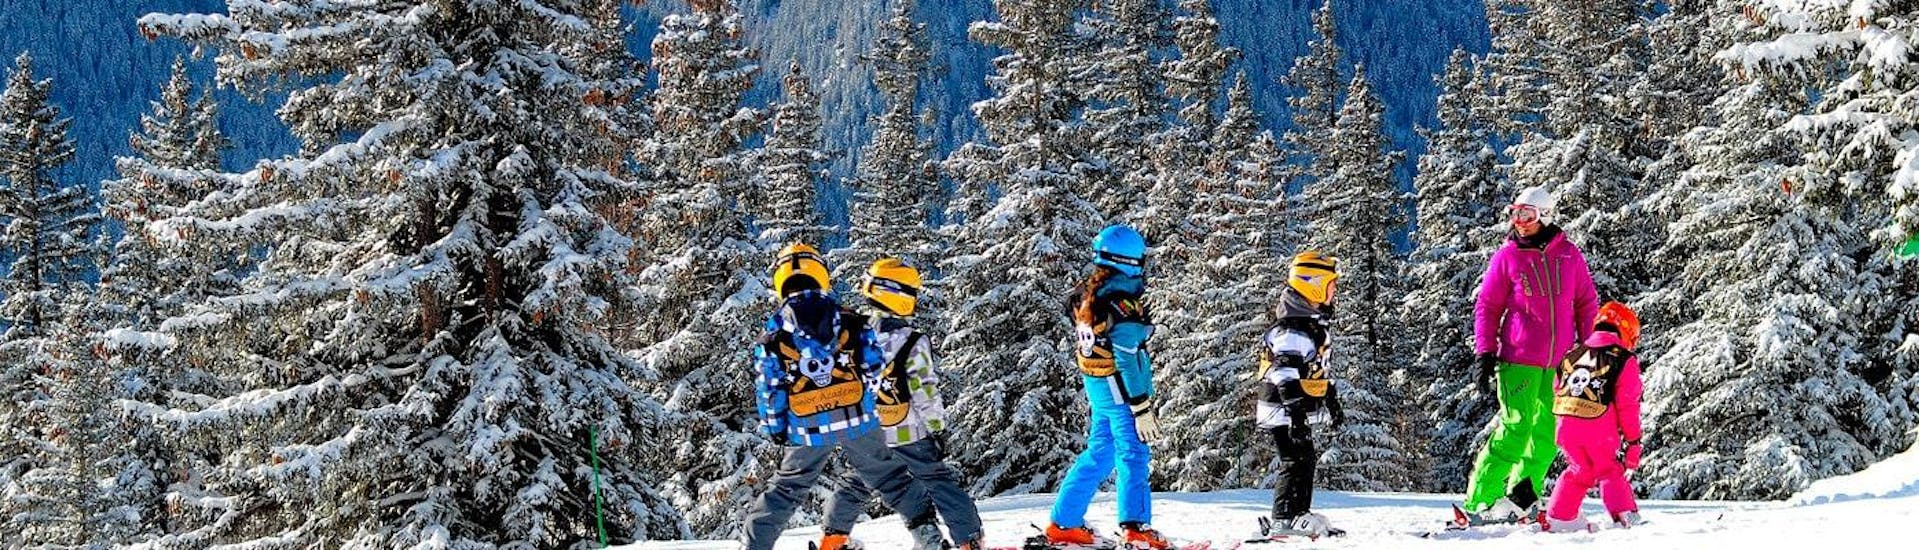 Children learn how to ski for the first time with an instructor from the ski school Evolution 2 Val d'Isère located in the ski resort Val d'Isère.